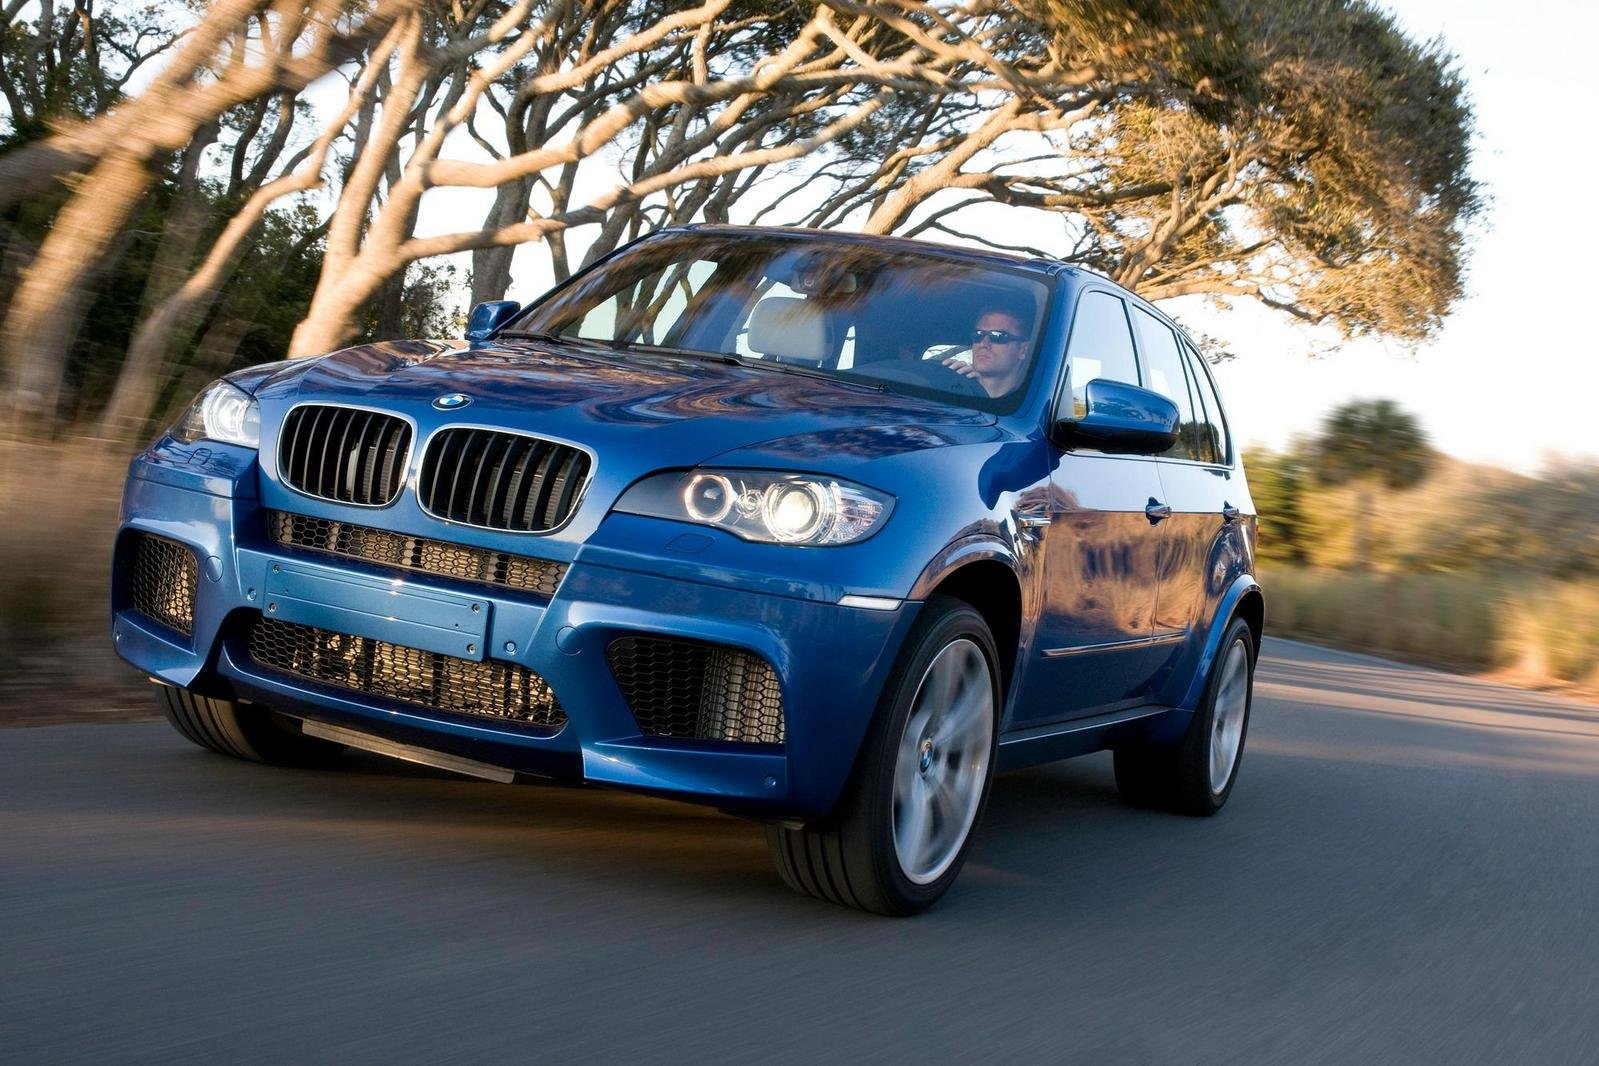 2010 BMW X5 M | car review @ Top Speed